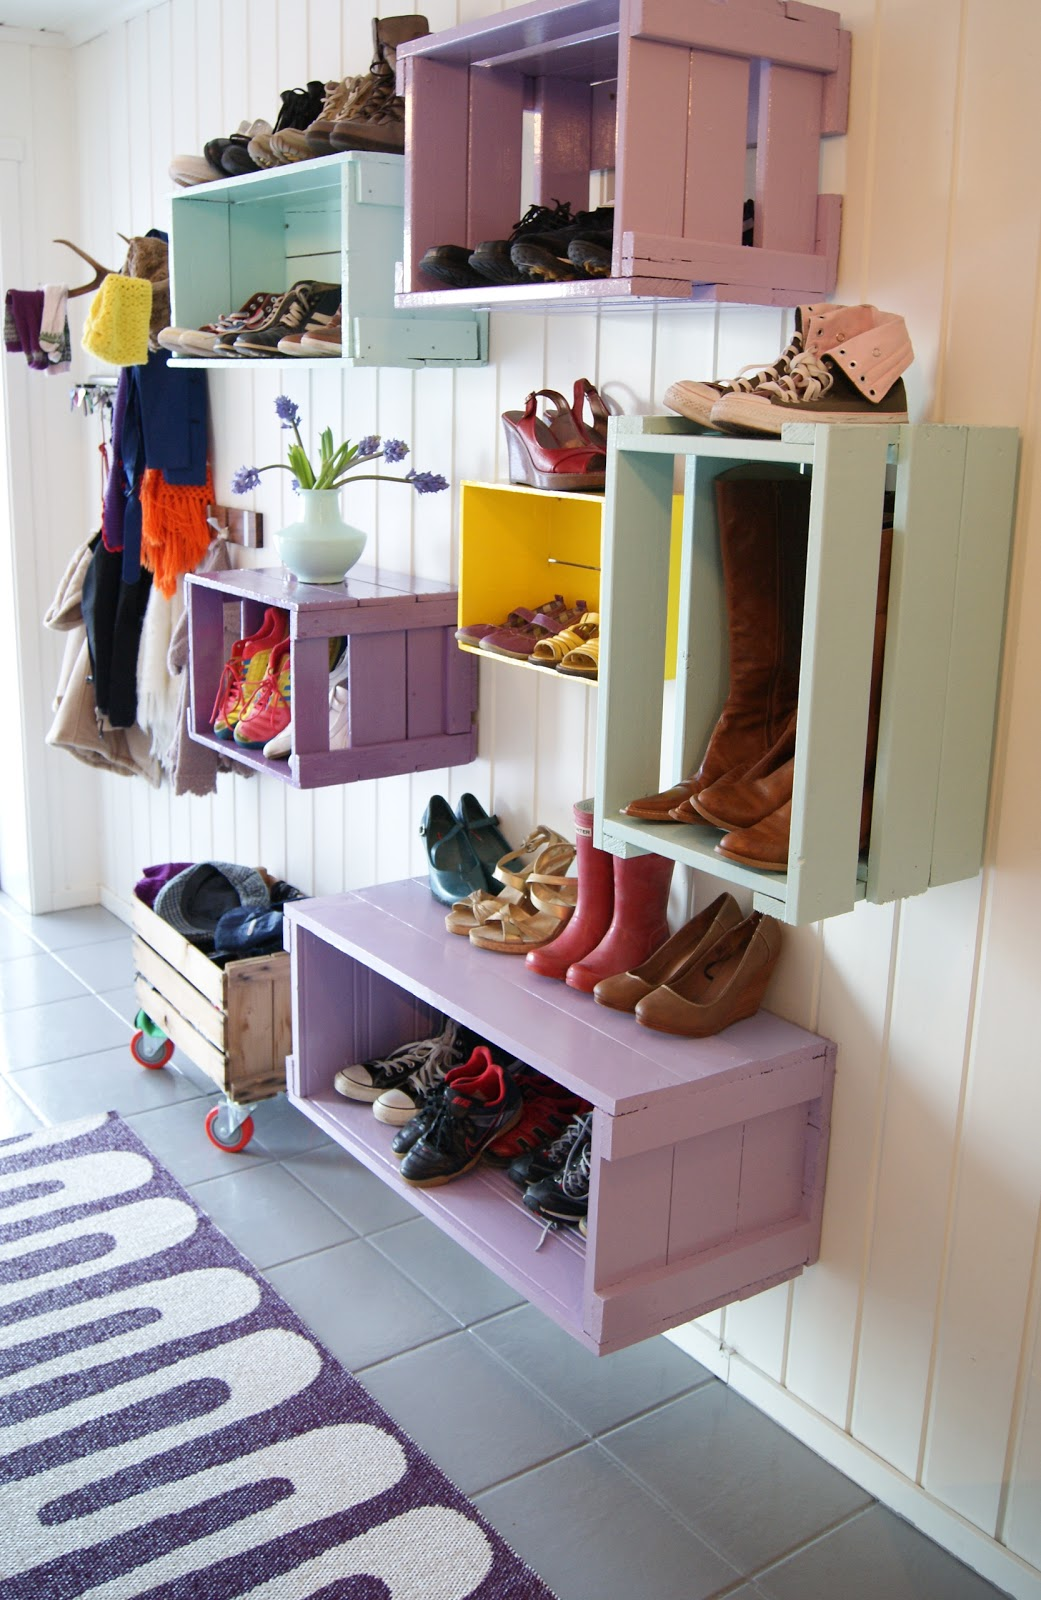 Wooden Crates to Eccentric Shelving